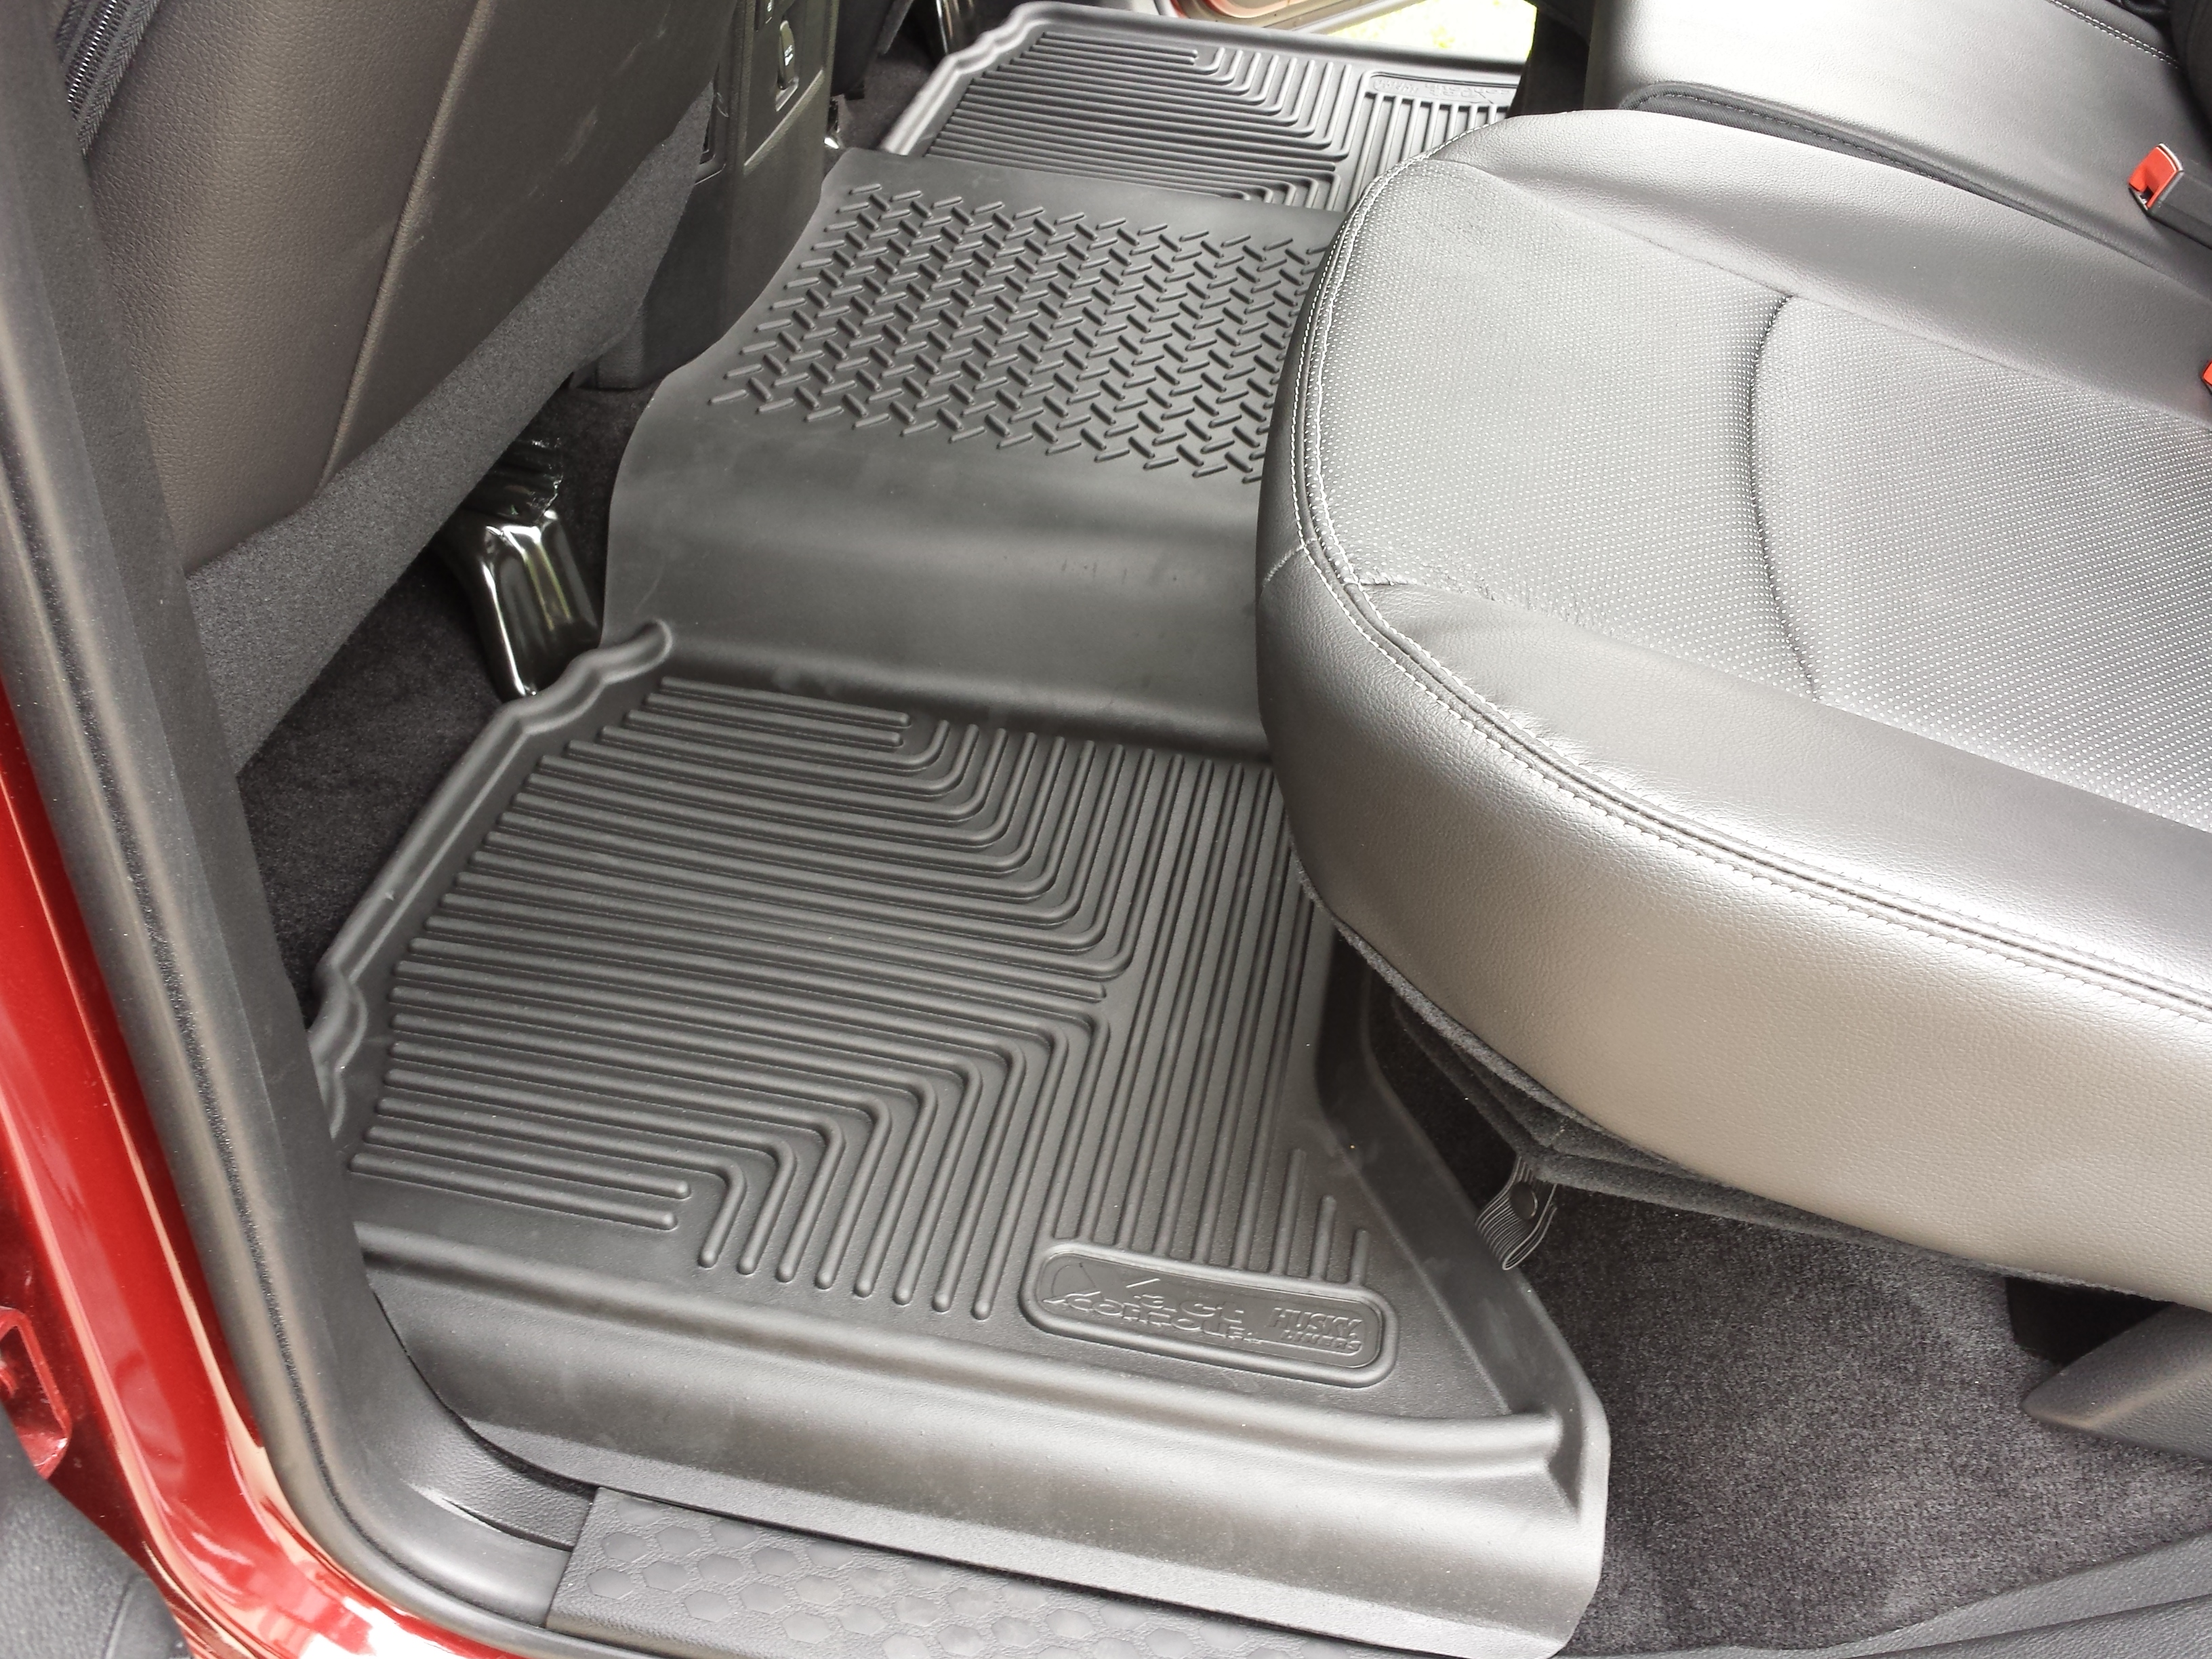 mat for forum ram name click car diesel accessories page version image floor weathertech larger mats nice